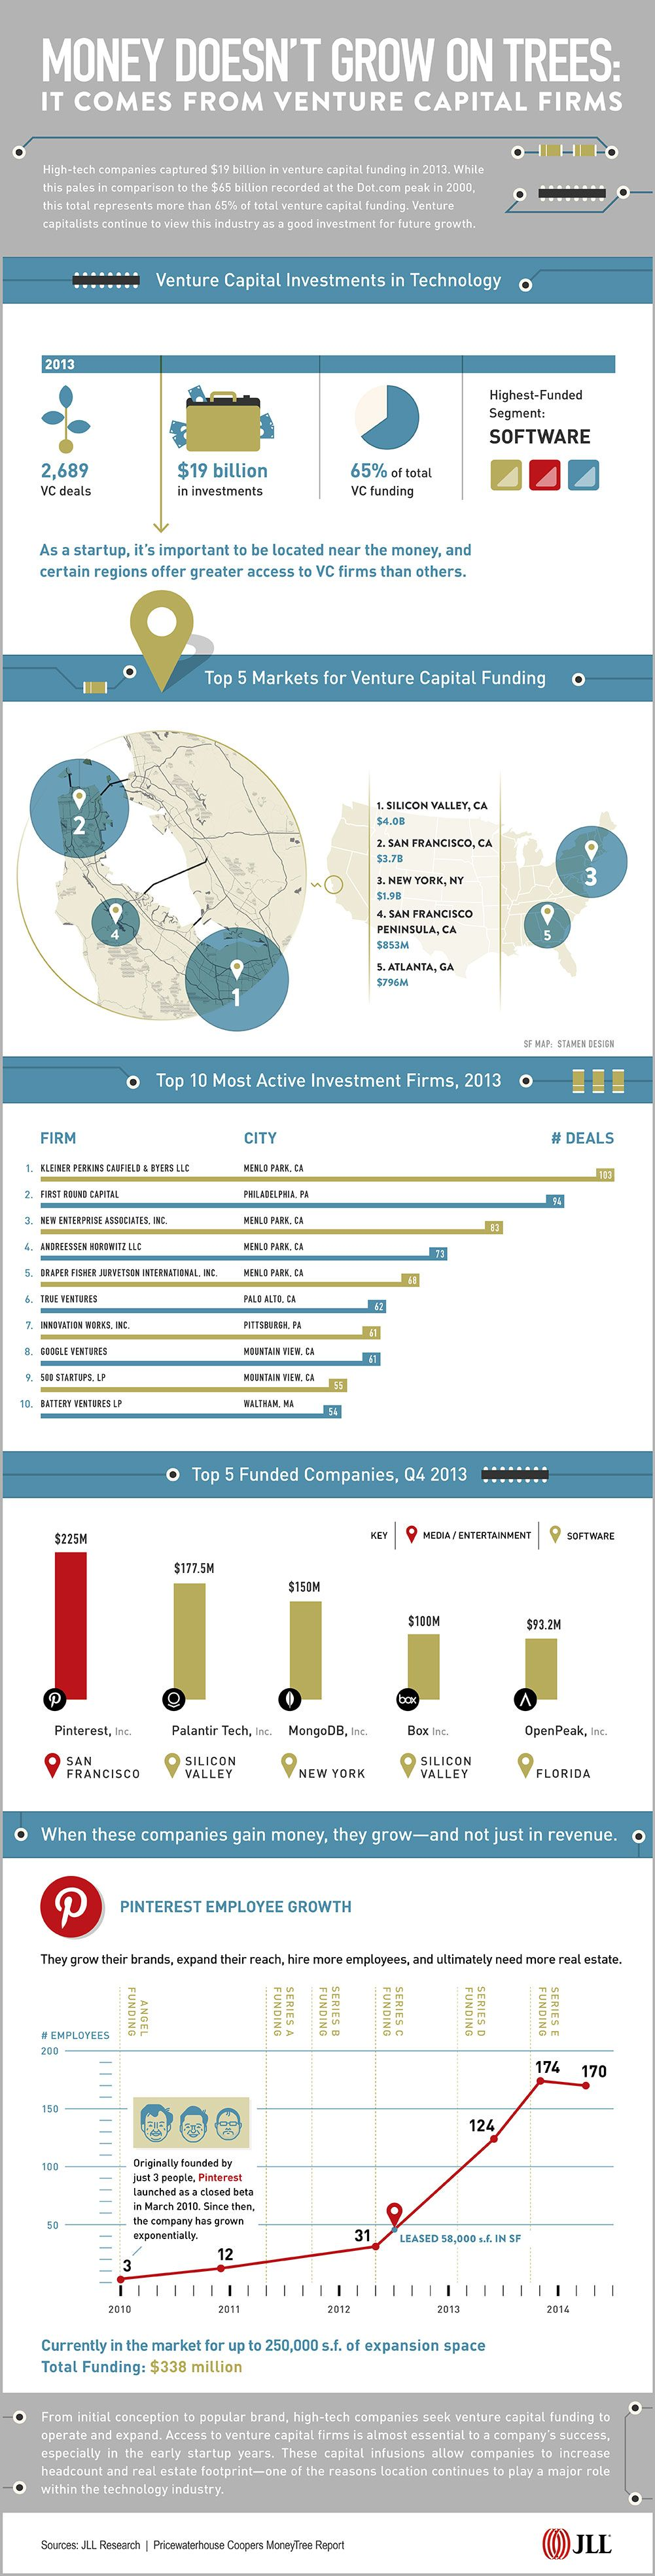 Venture capital firms fund tech companies Money doesn't